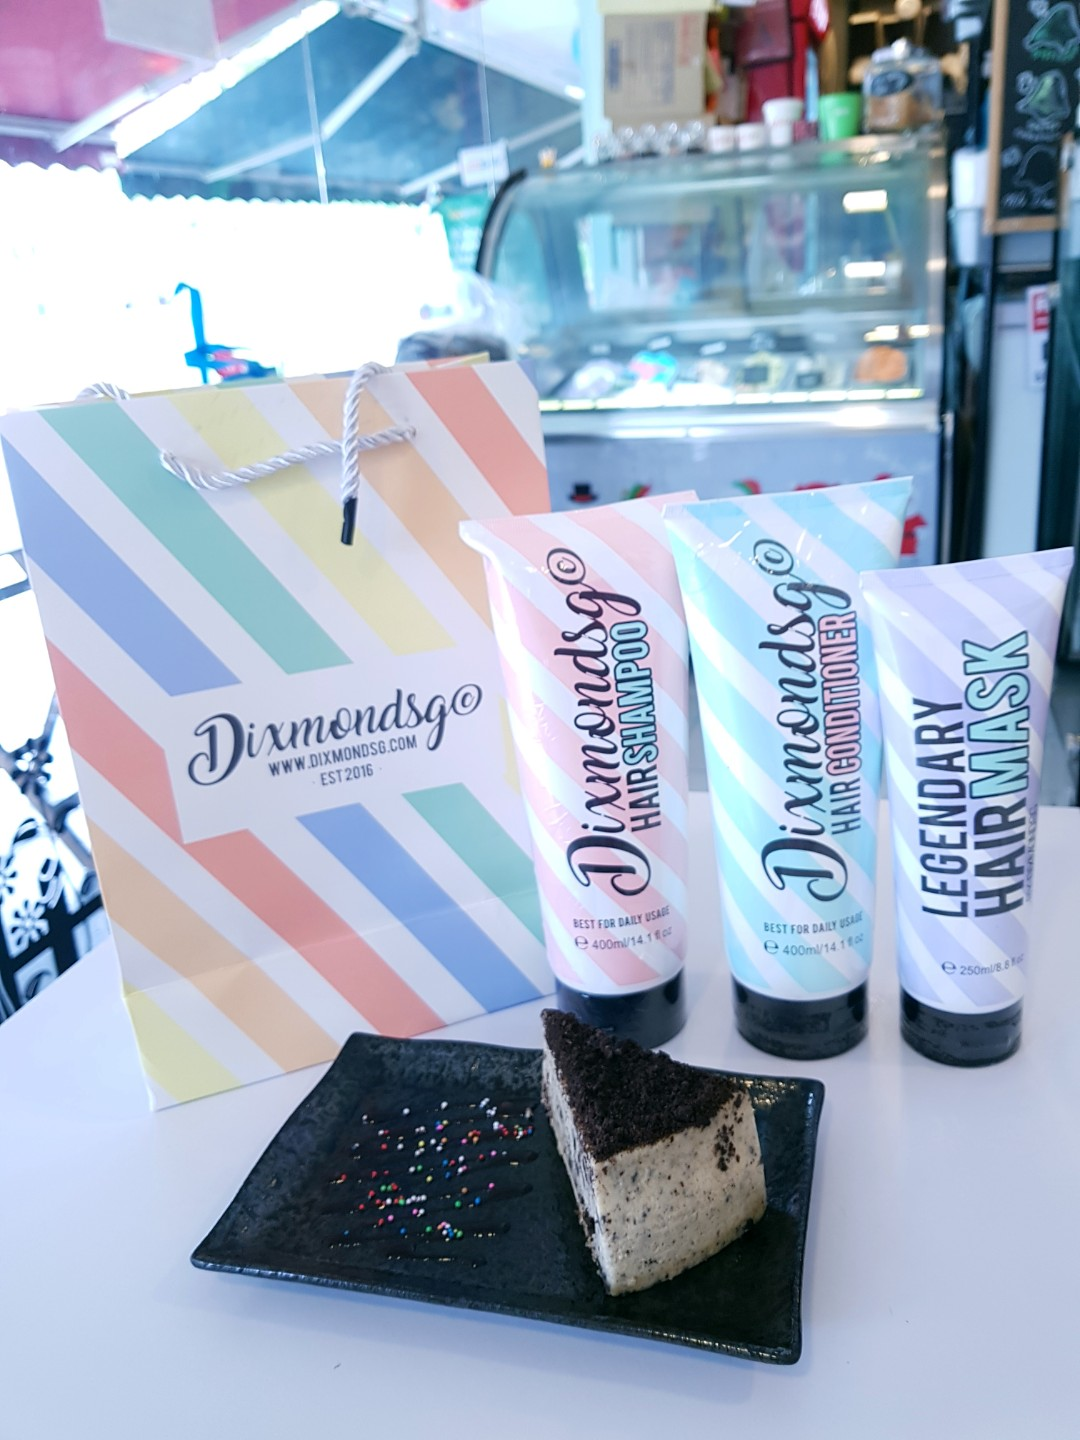 DixmondSg Hair Care Series